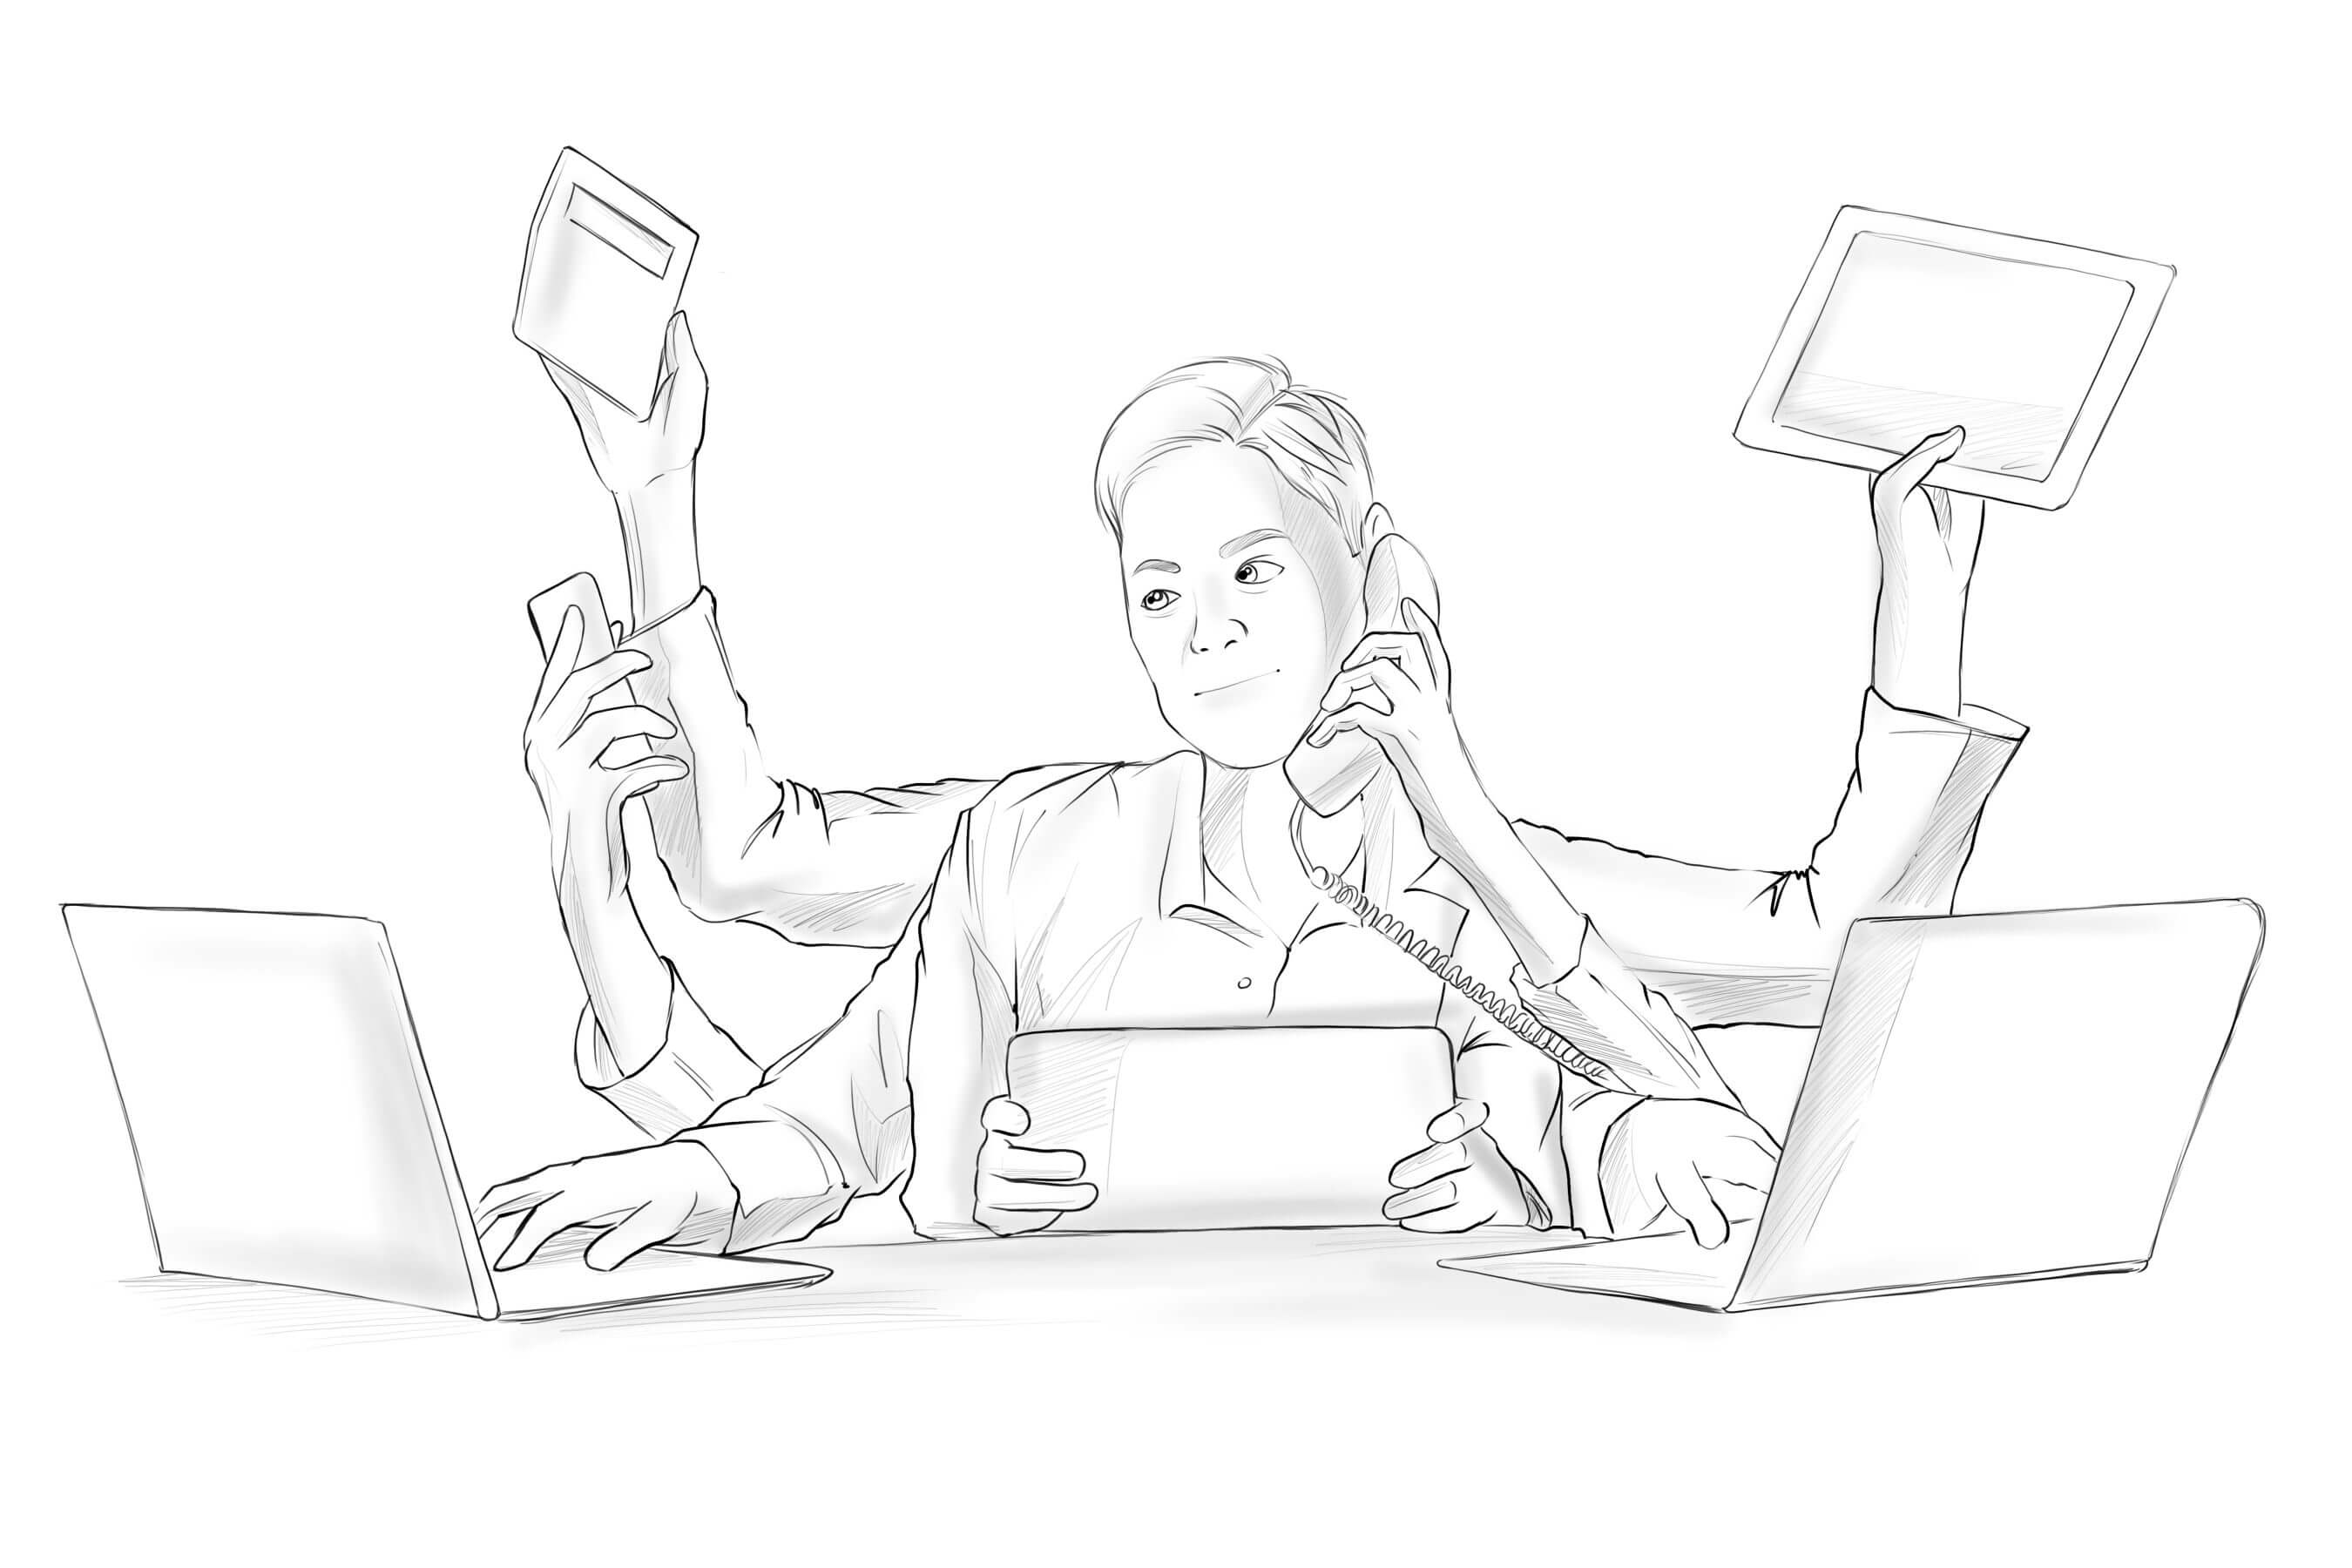 SMART PHONES, OTHER DEVICES, PERSON MULTITASKING AT WORK